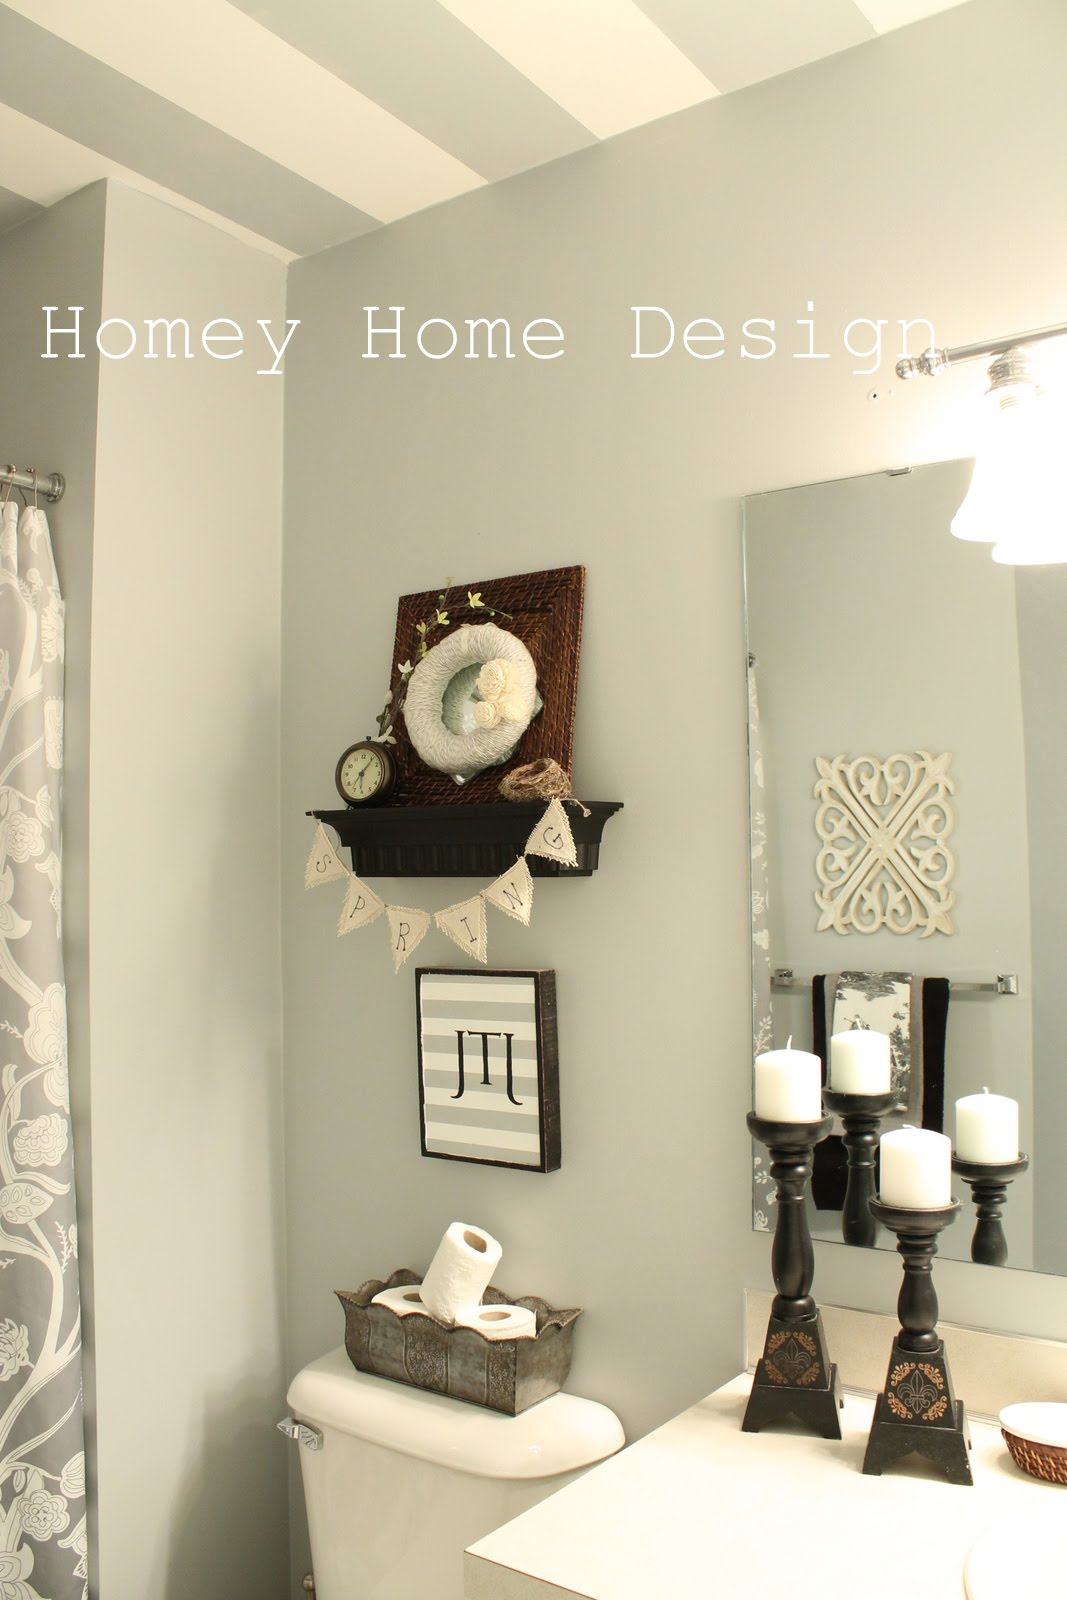 Homey home design spring updates in the bathroom for Spring bathroom decor